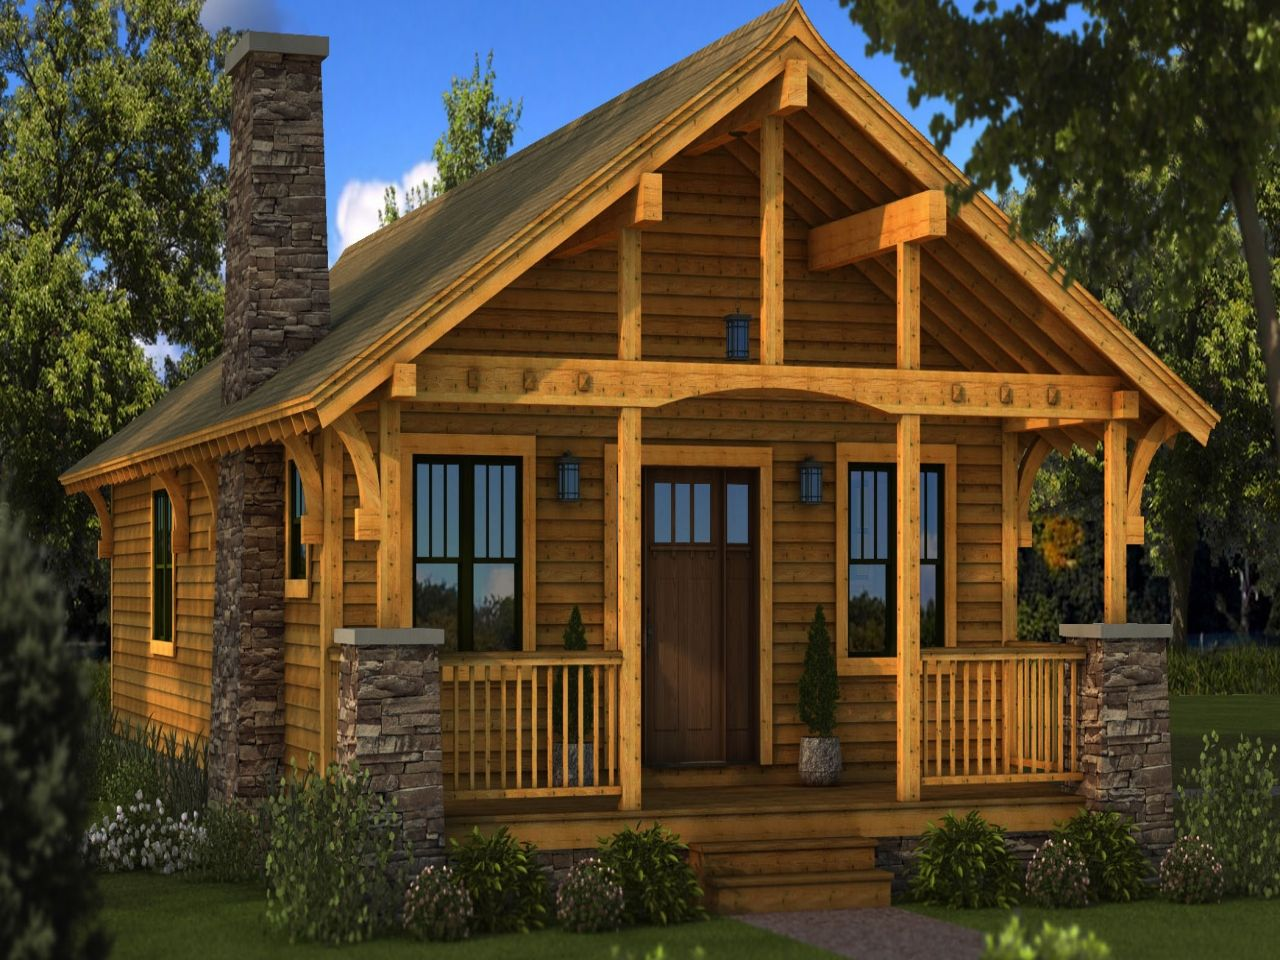 small log cabin homes plans one story cabin plans On small cabin house plans